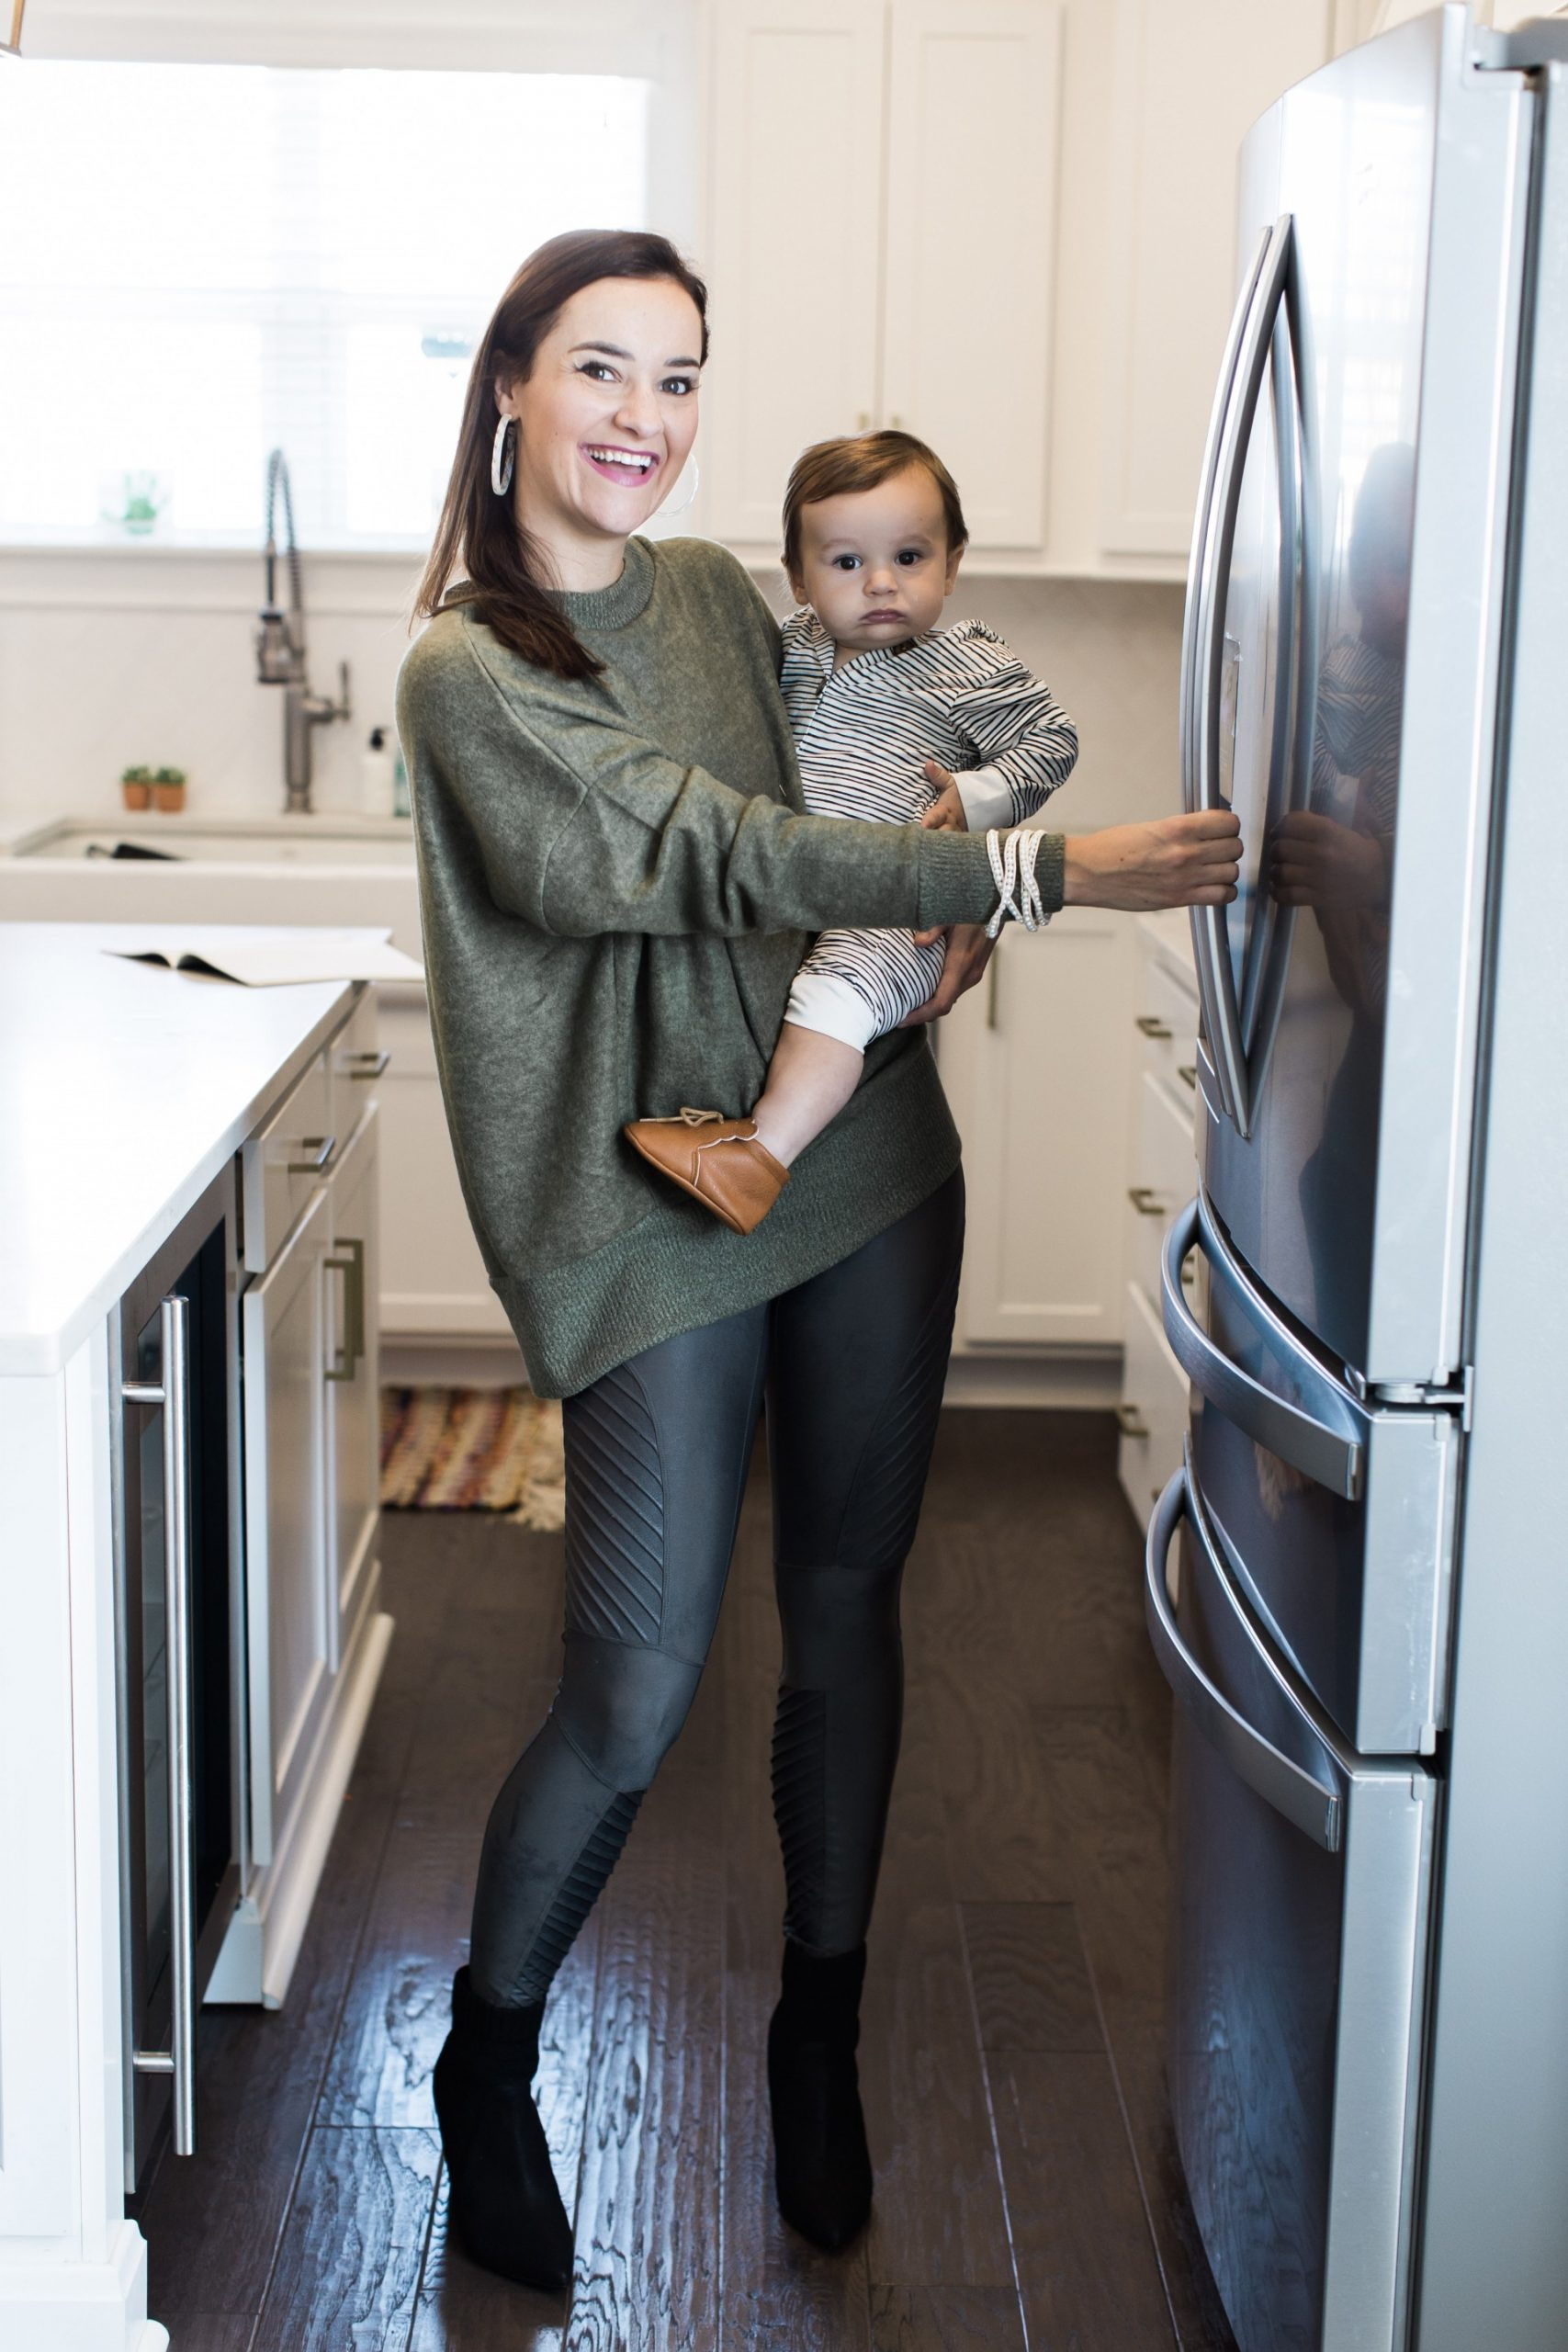 Meal Planning 101 For Busy Moms by Alabama Life + Style Blogger, Heather Brown // My Life Well Loved